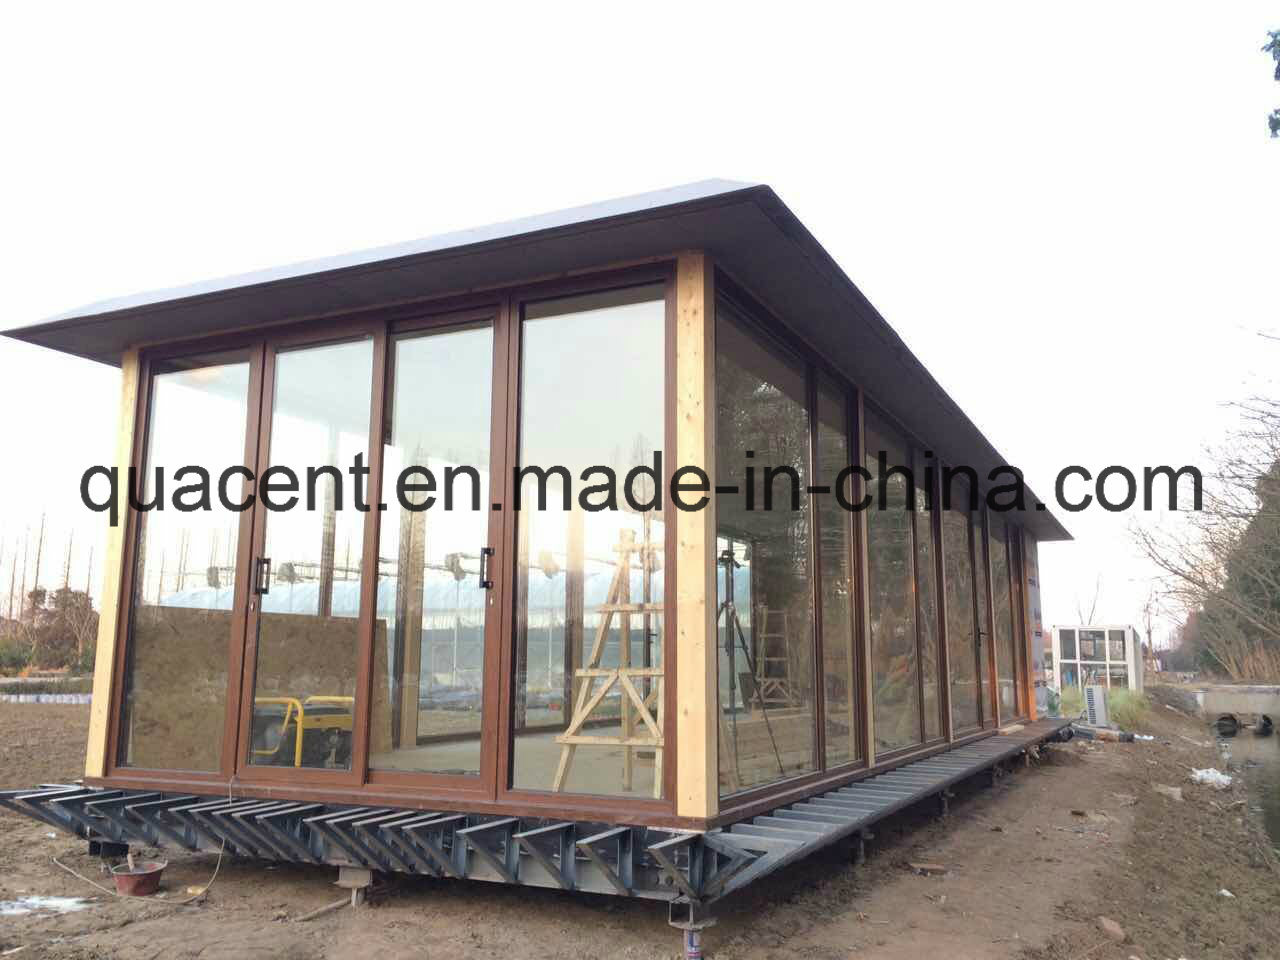 Beautiful Sunny Mobile Prefab House or Show Room